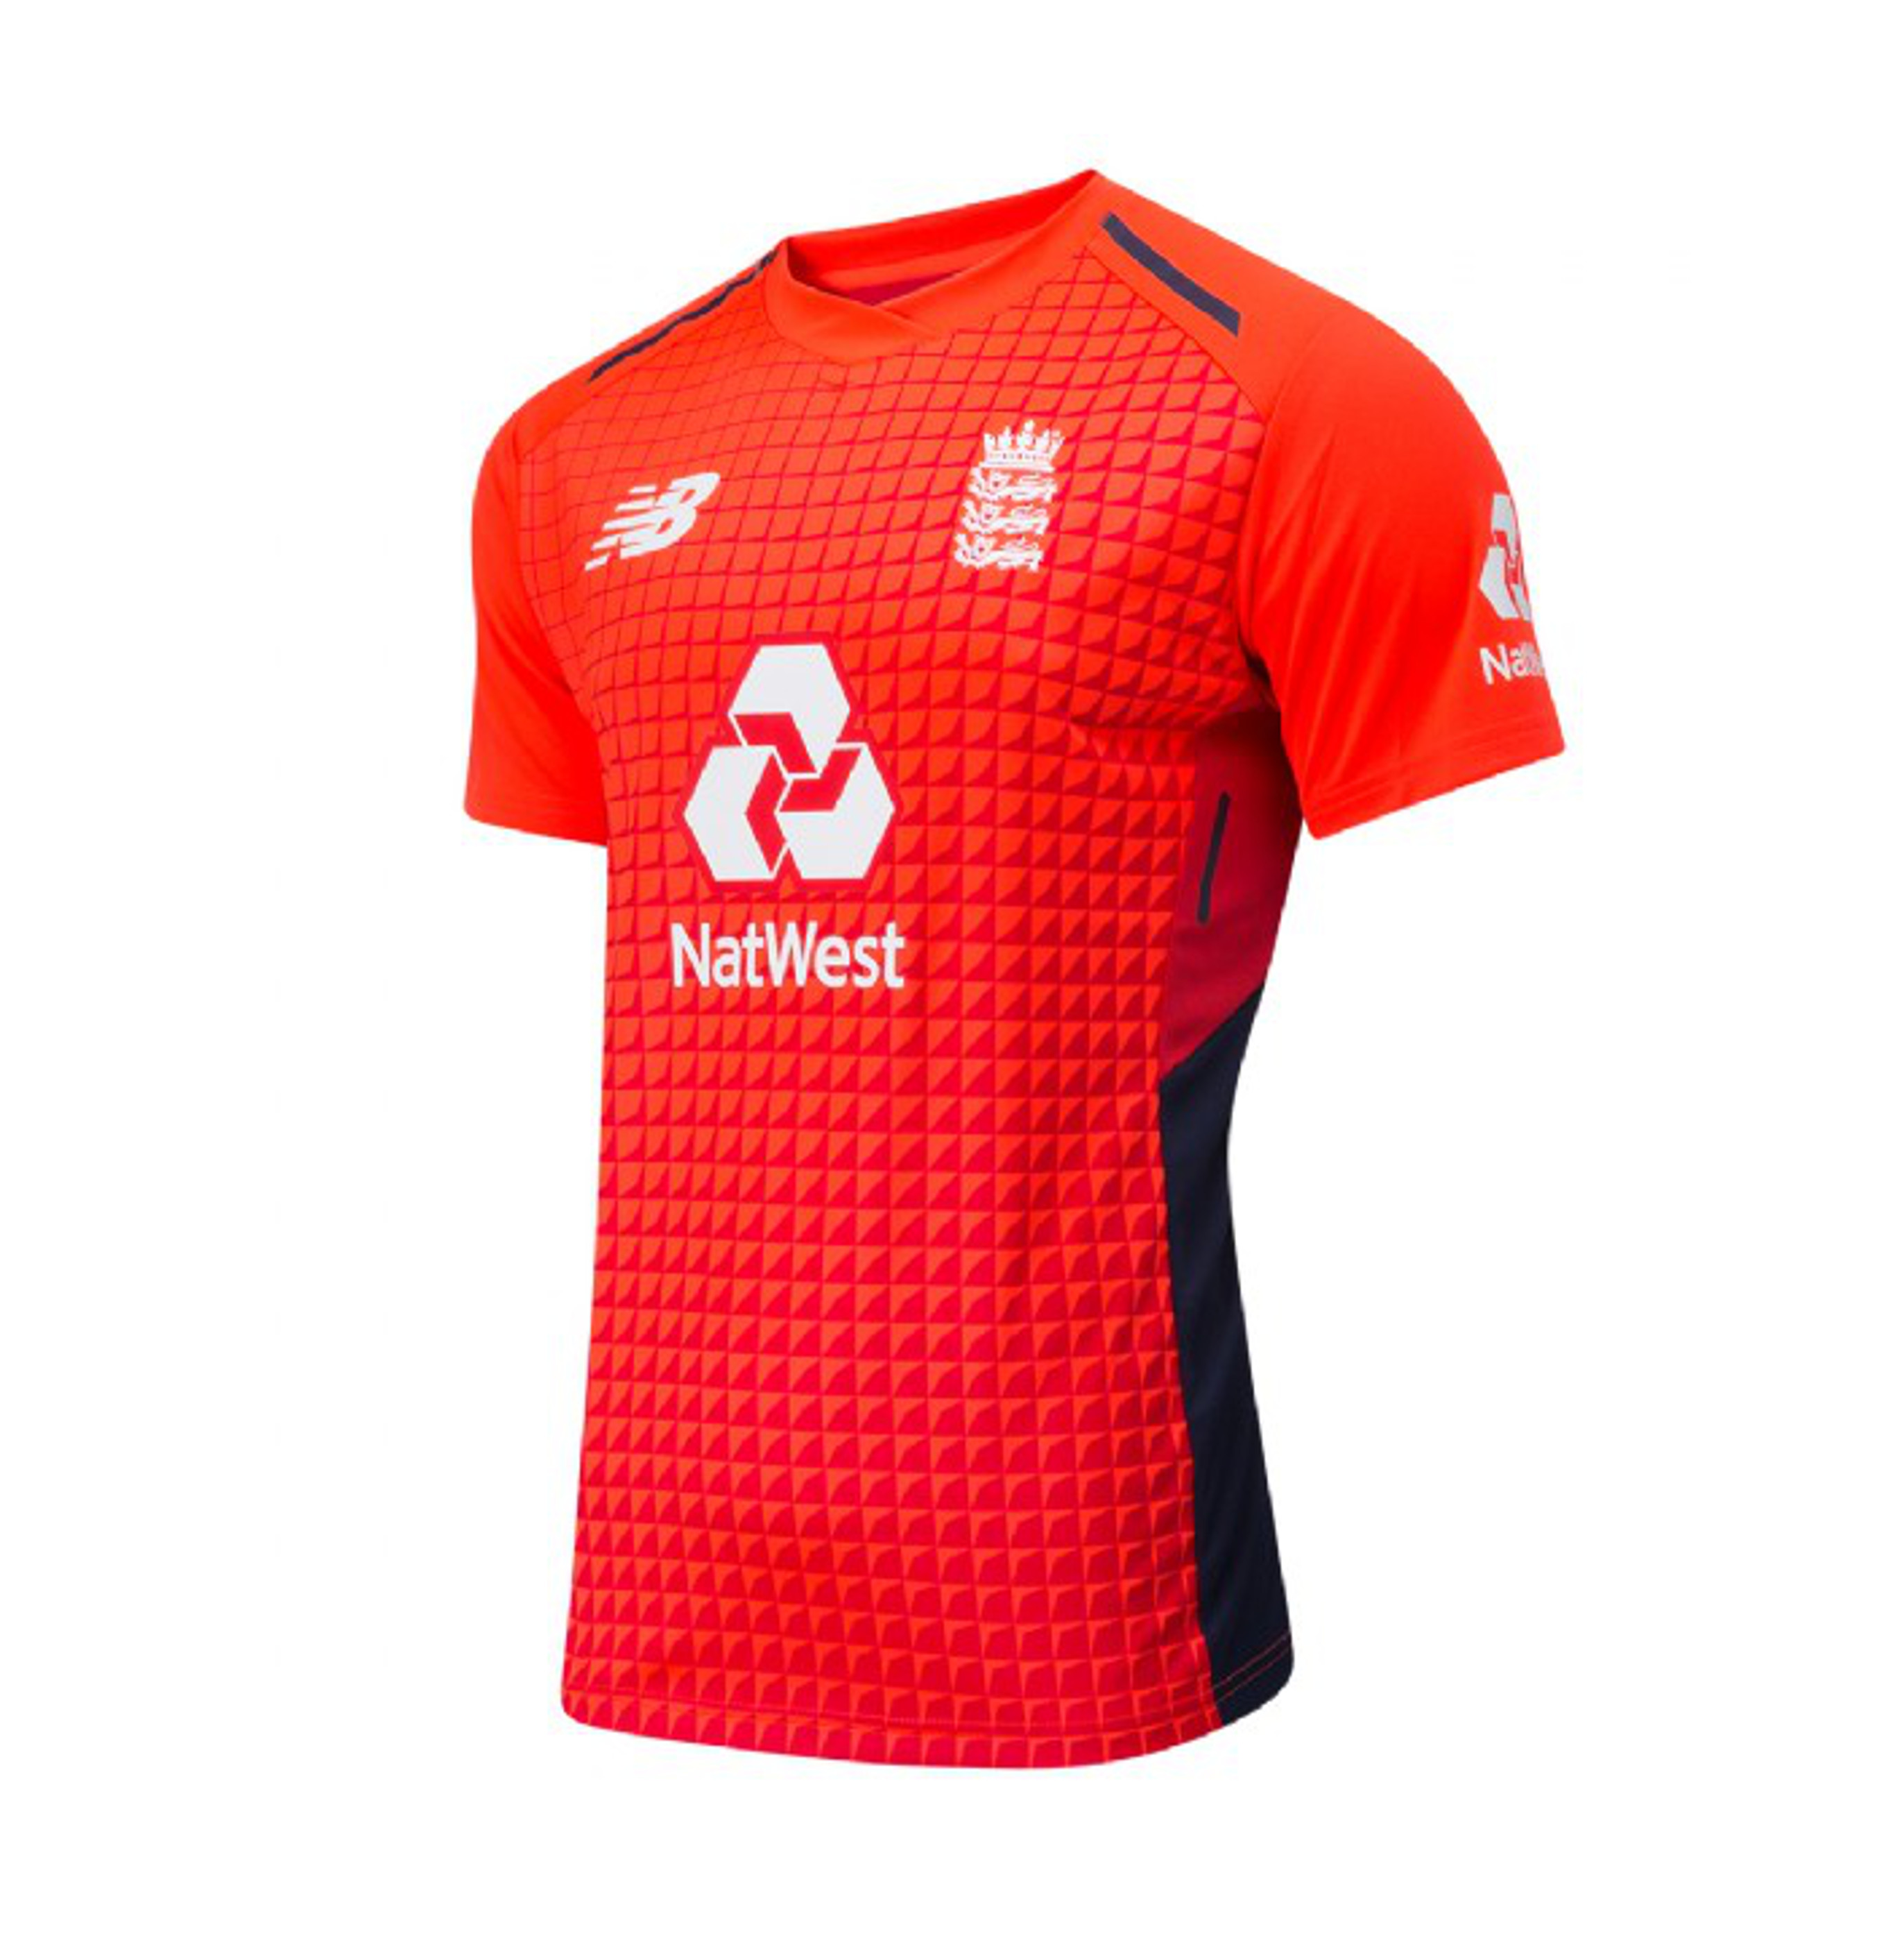 2018 England T20 Replica Shirt – The Cricket Store at Essex Cricket 613138087496